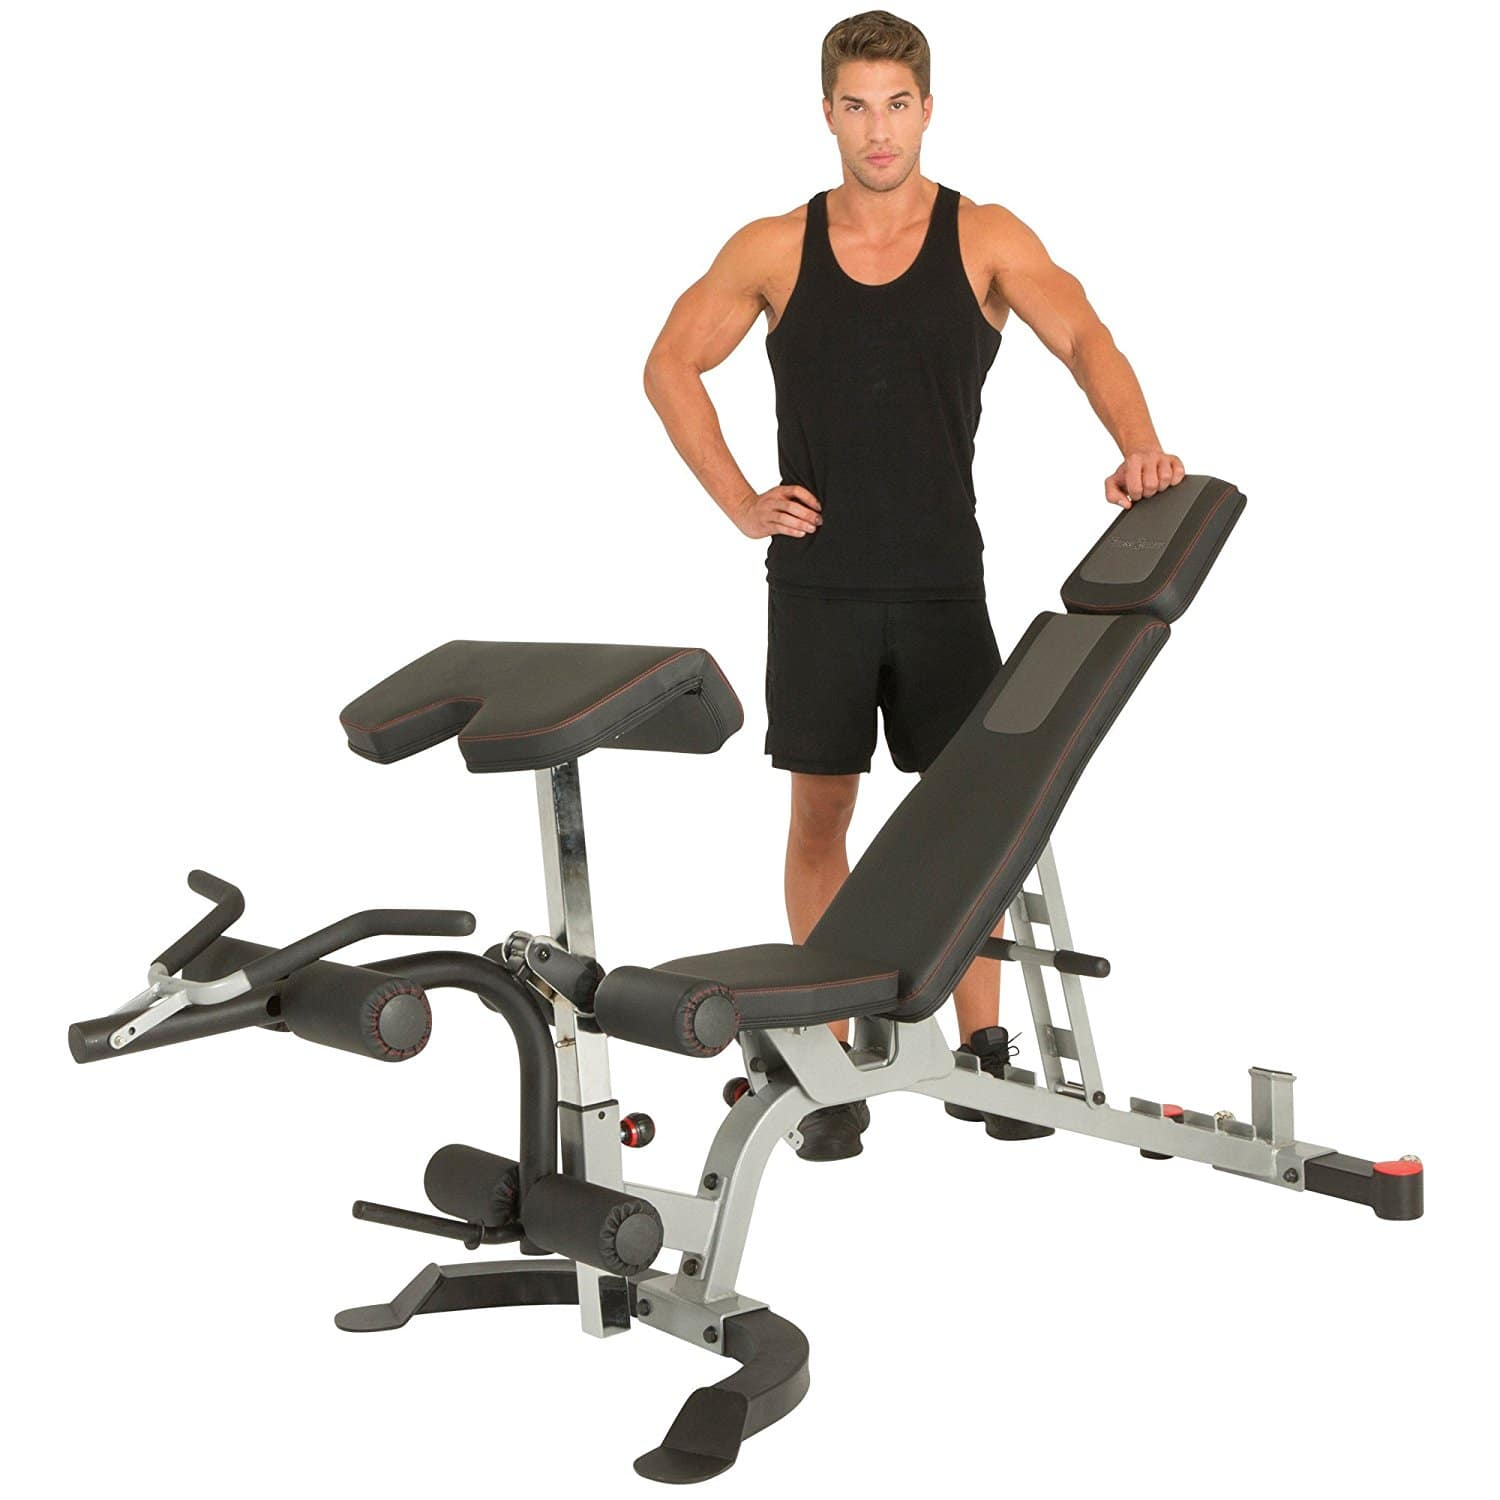 Fitness Reality X-Class 1500 lb Light Commercial Utility Weight Bench with Preacher Curl and Leg Developer Attachment $337.49